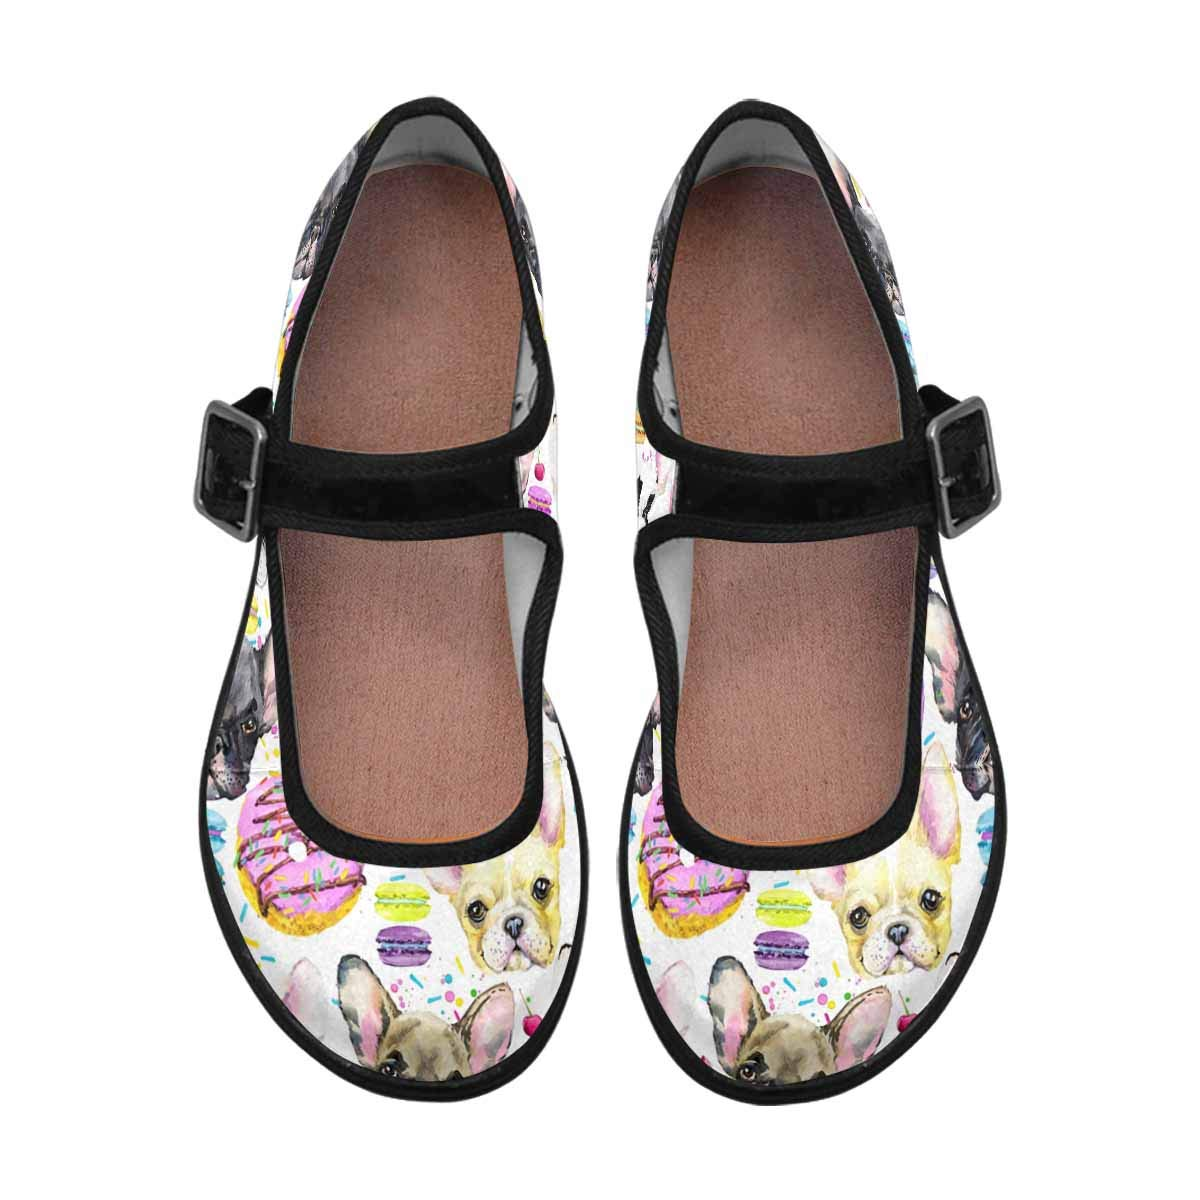 INTERESTPRINT Womens Slip-Resistant Mary Jane Flats for Dr Scholls Puppy French Bulldog with Sweet Macaron